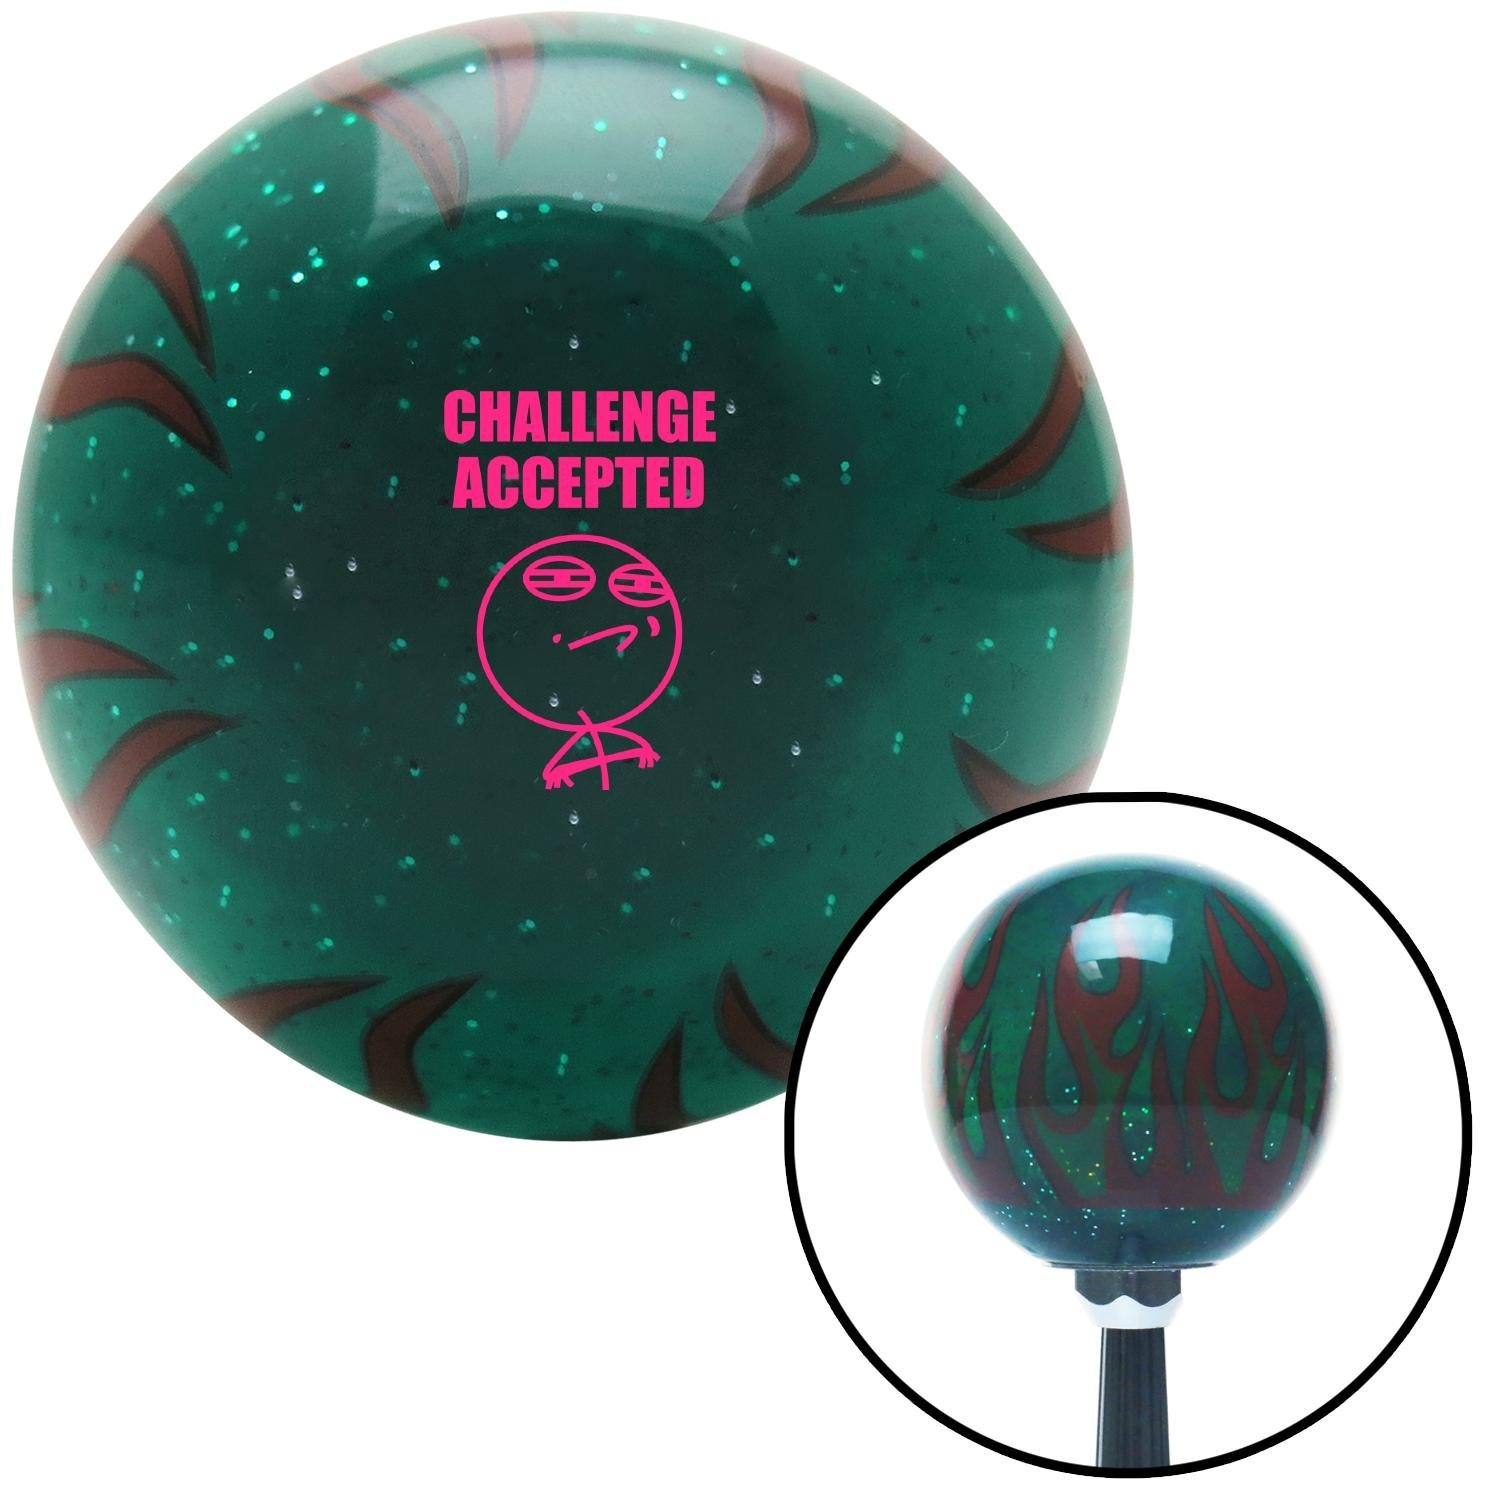 American Shifter 300066 Shift Knob Pink Challenge Accepted Green Flame Metal Flake with M16 x 1.5 Insert